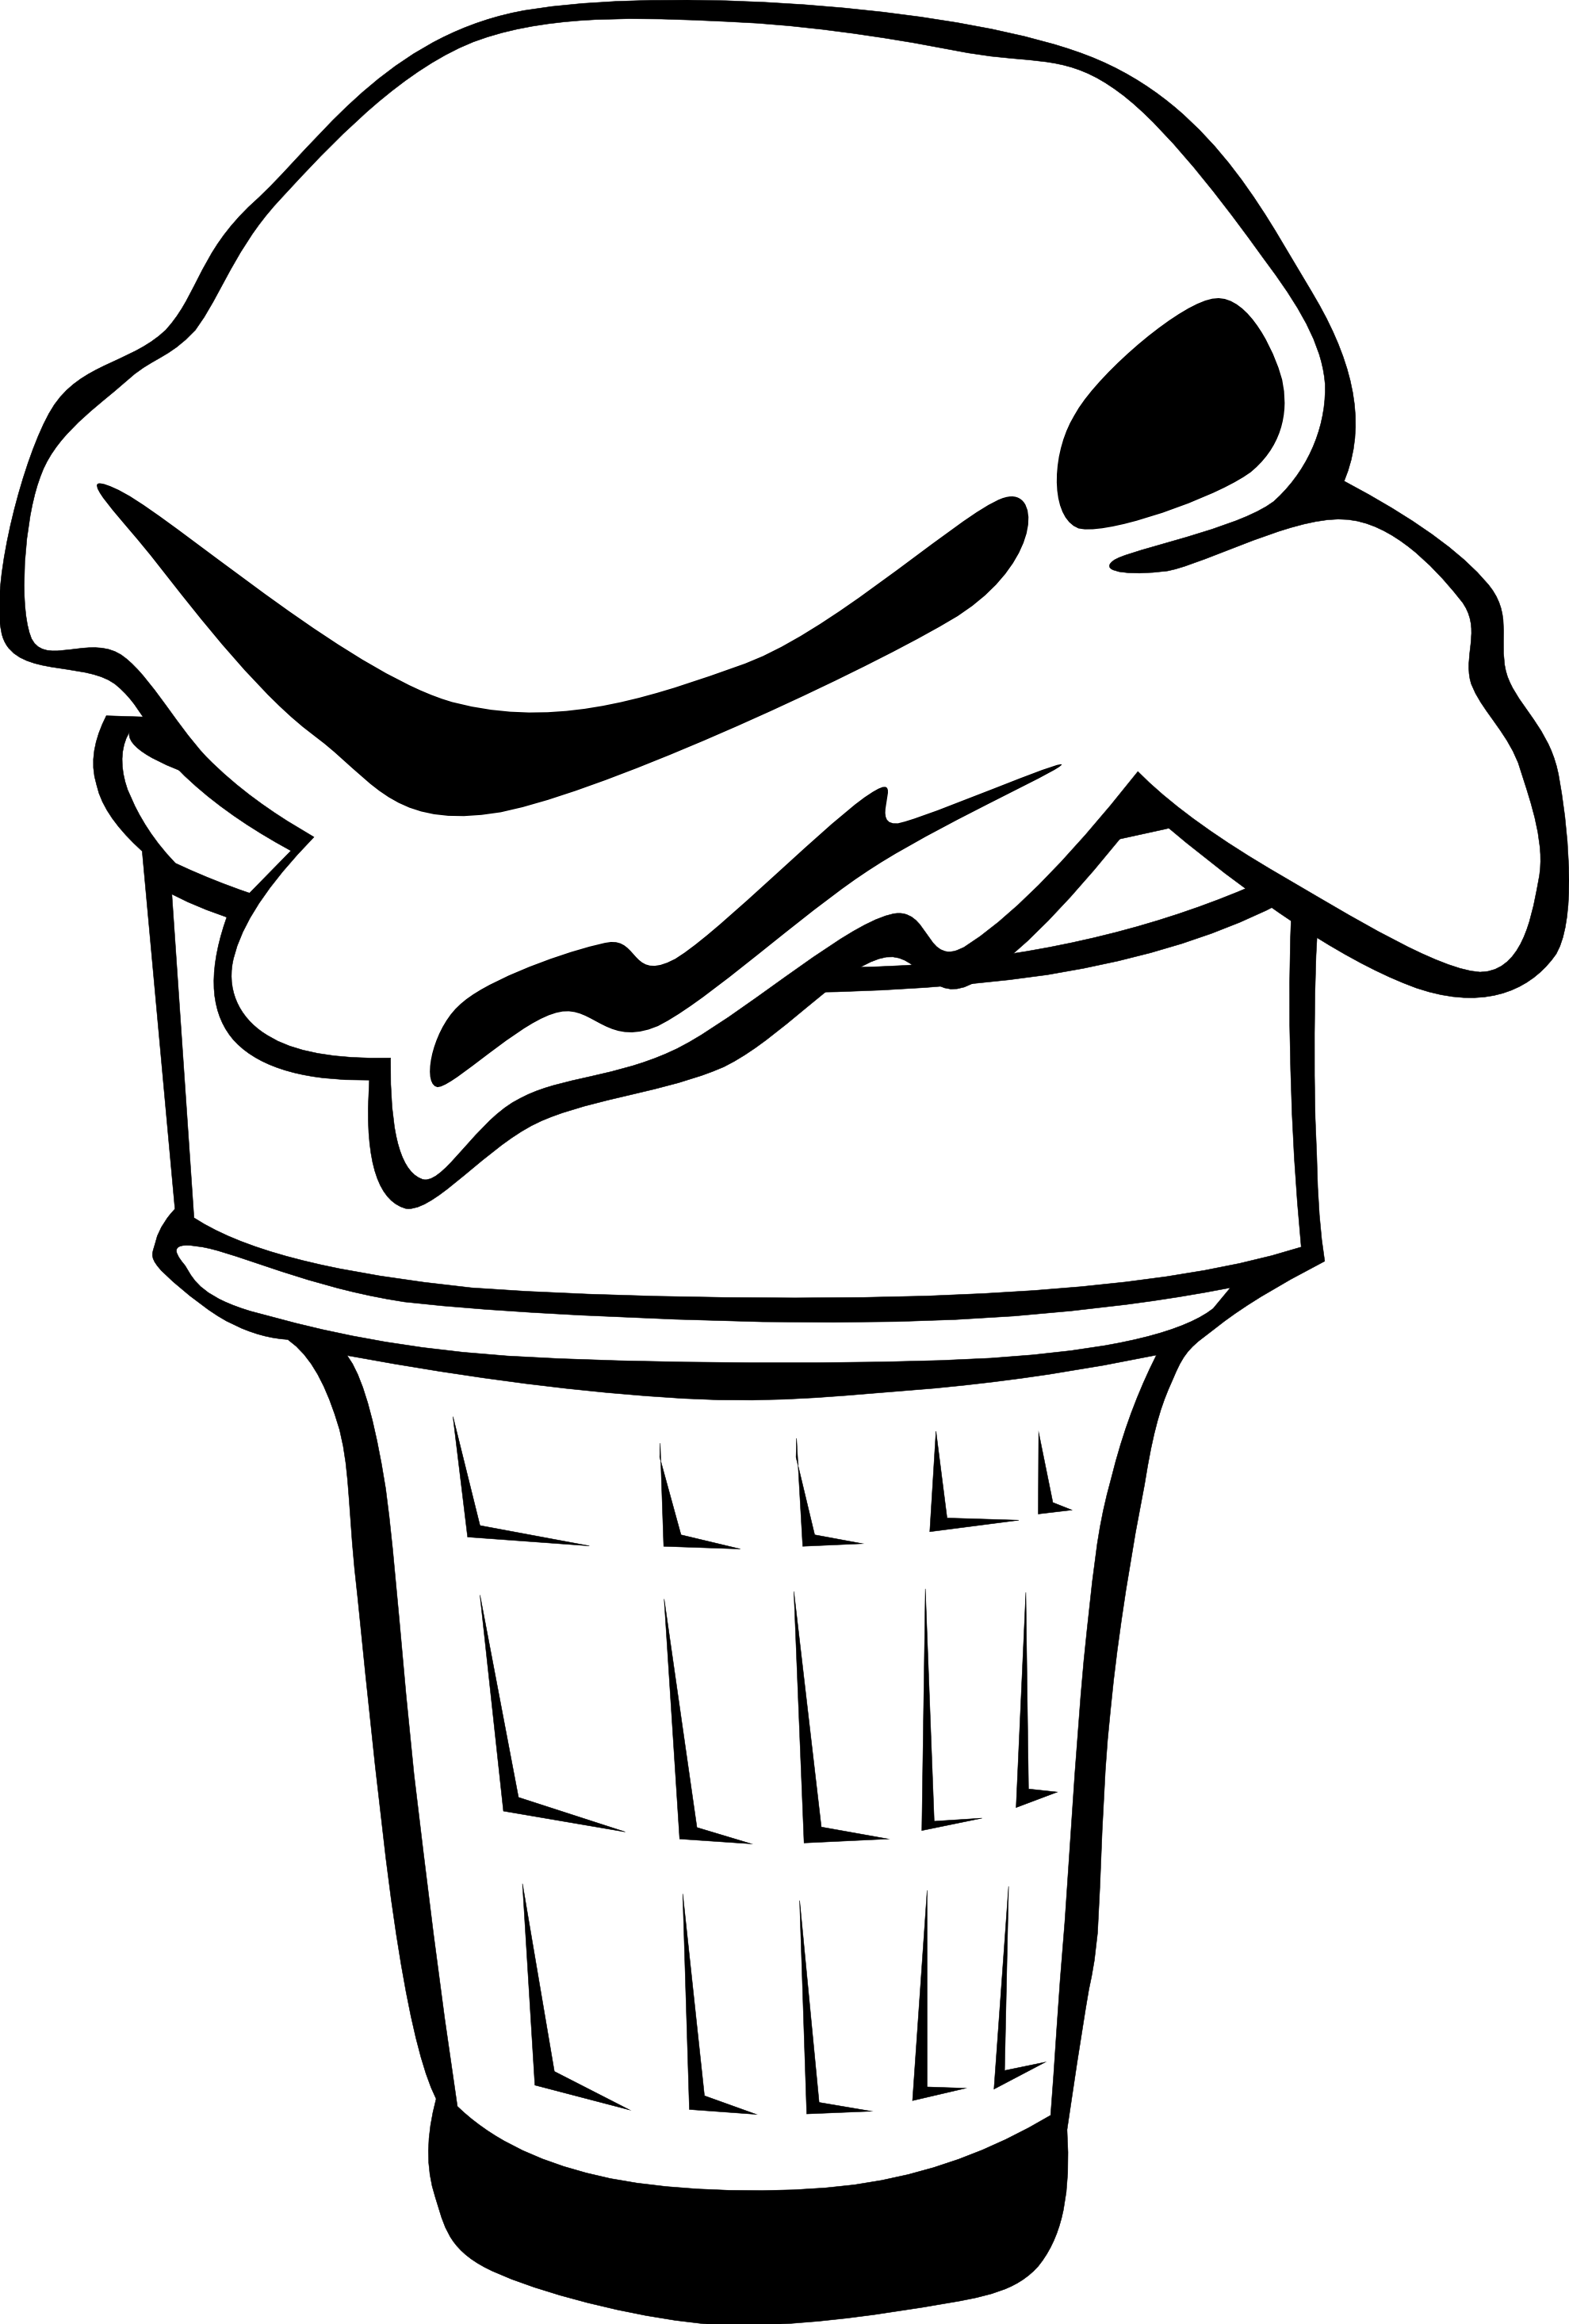 Coloring pictures of ice cream cones - Black 20and 20white 20ice 20cream 20cone 20clipart